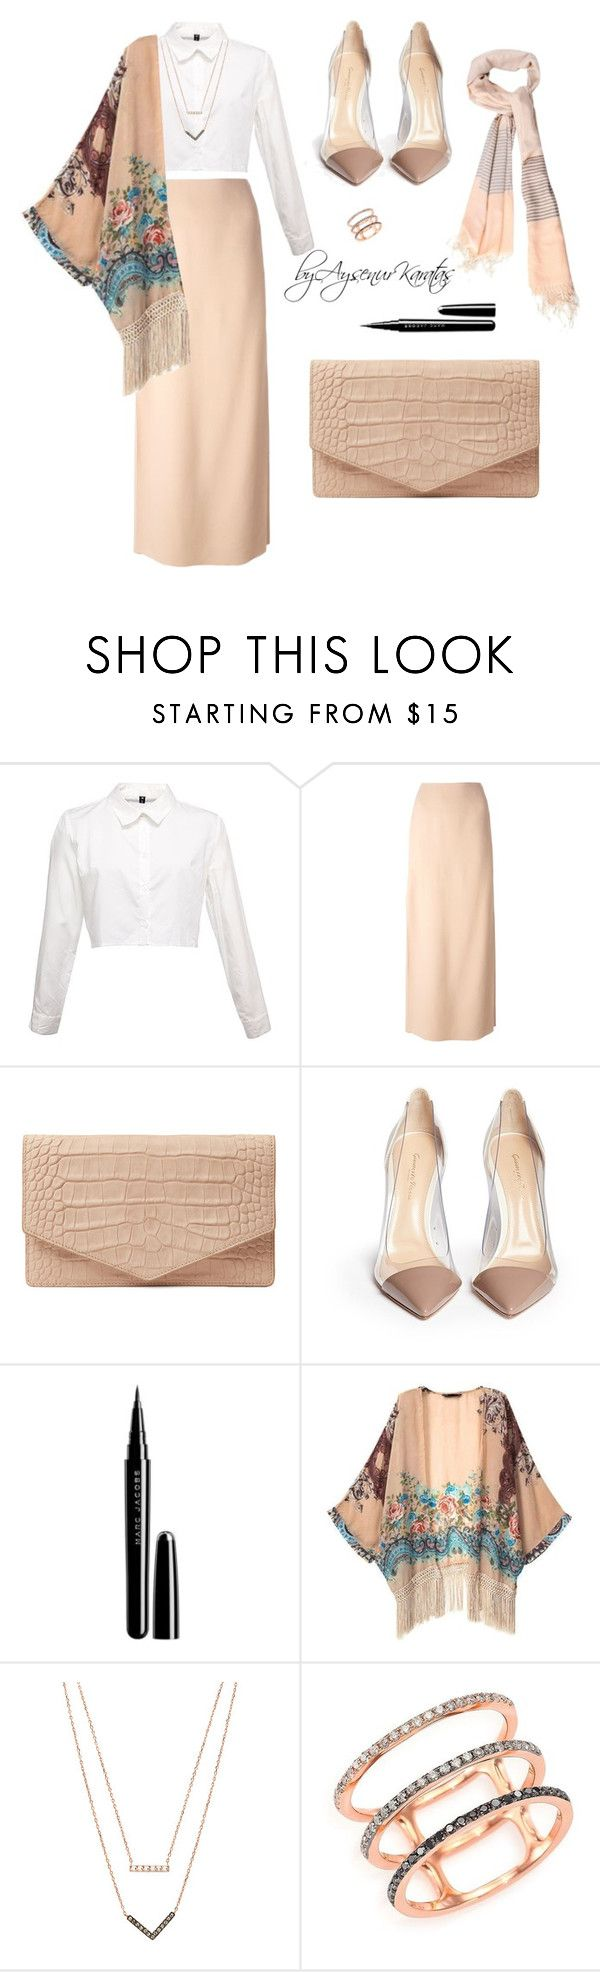 Hijab Style by aysenurkaratas on Polyvore featuring moda, Retrò, Lanvin, Gianvito Rossi, Emily Cho, EF Collection, Michael Kors and Marc Jacobs #hijab #fashion #hijaboutfits